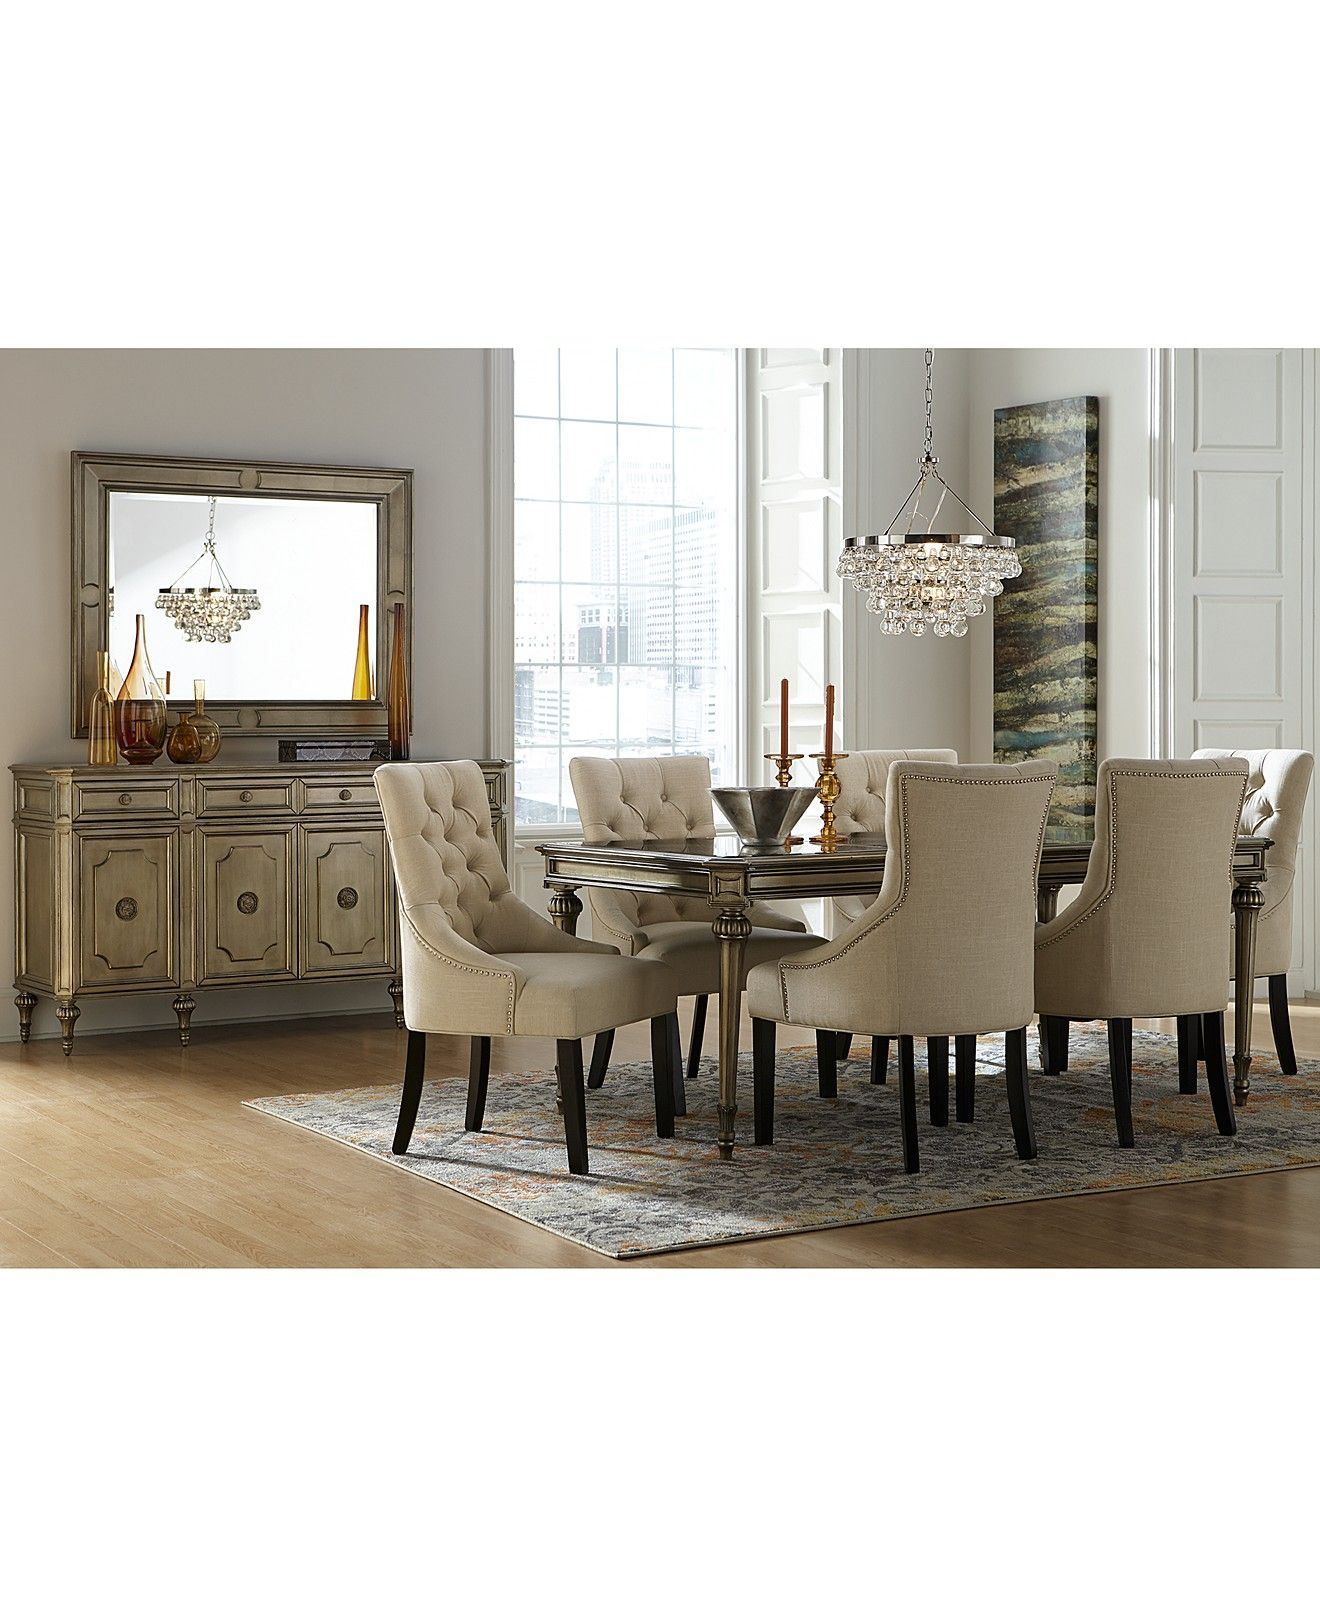 Prosecco Dining Set With Marais Chairs  Dining Room Collections Mesmerizing Macys Dining Room Chairs Decorating Design